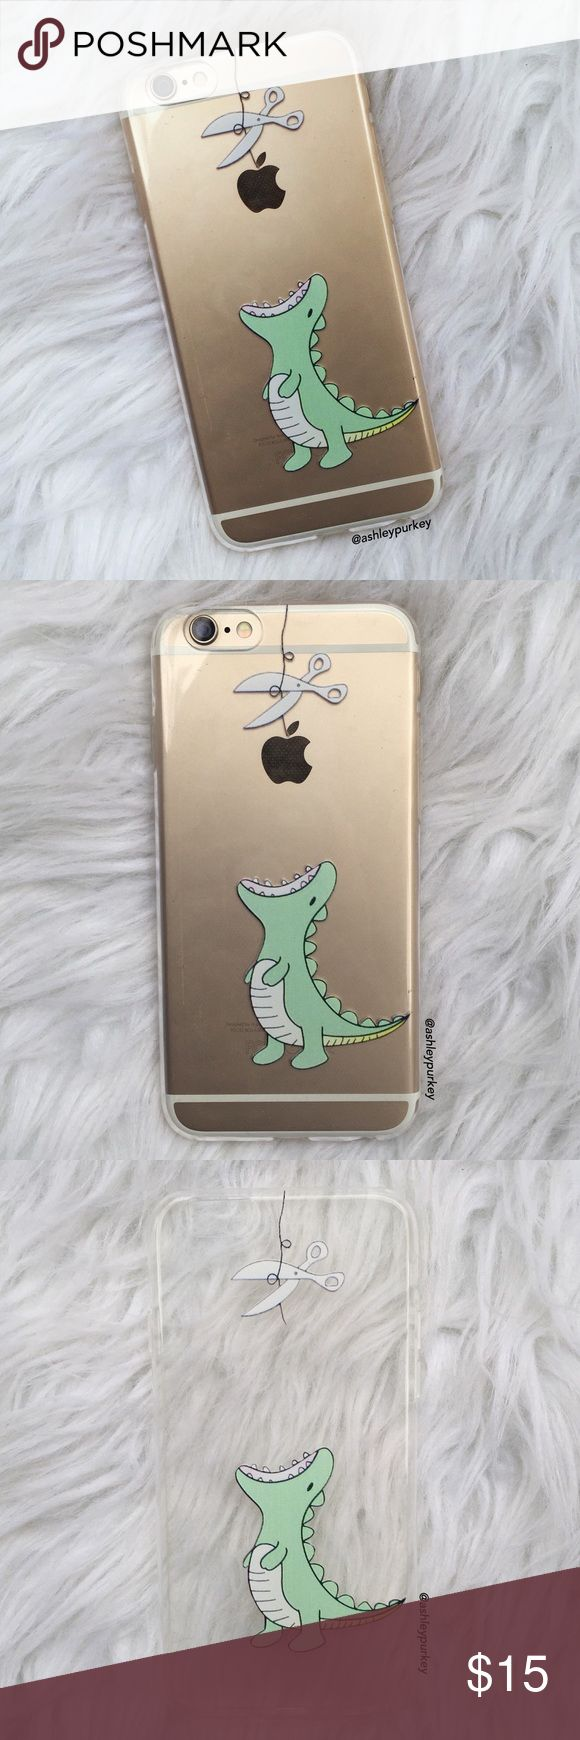 "cartoon green dinosaur iPhone 6/6s 7 7 Plus case •sizes: iPhone 6/6s -OR- iPhone 7 (4.7"") iPhone 7 Plus (5.5"")  •flexible silicone  •phone not included   •no trades    *please make sure you purchase the correct size case. i am not responsible if you purchase the wrong size B-Long Boutique  Accessories Phone Cases"